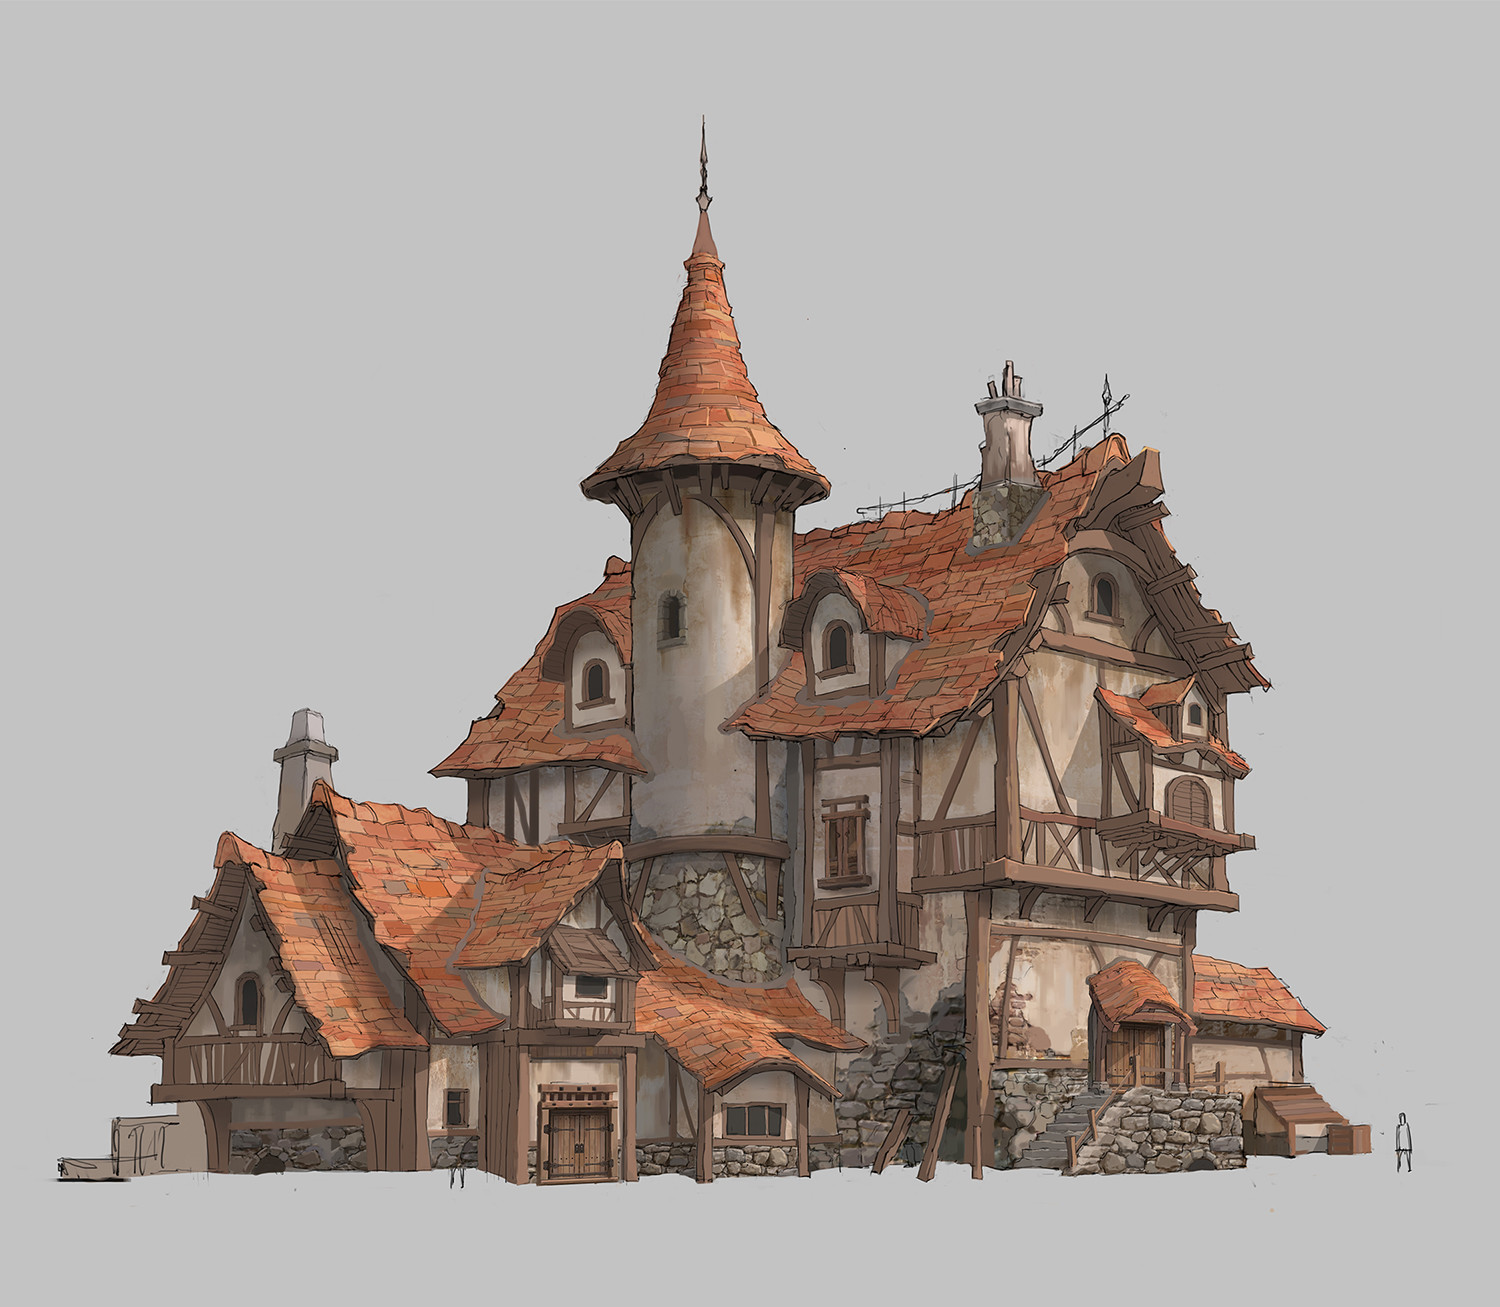 Artstation house design taewon hwang for Fantasy house plans